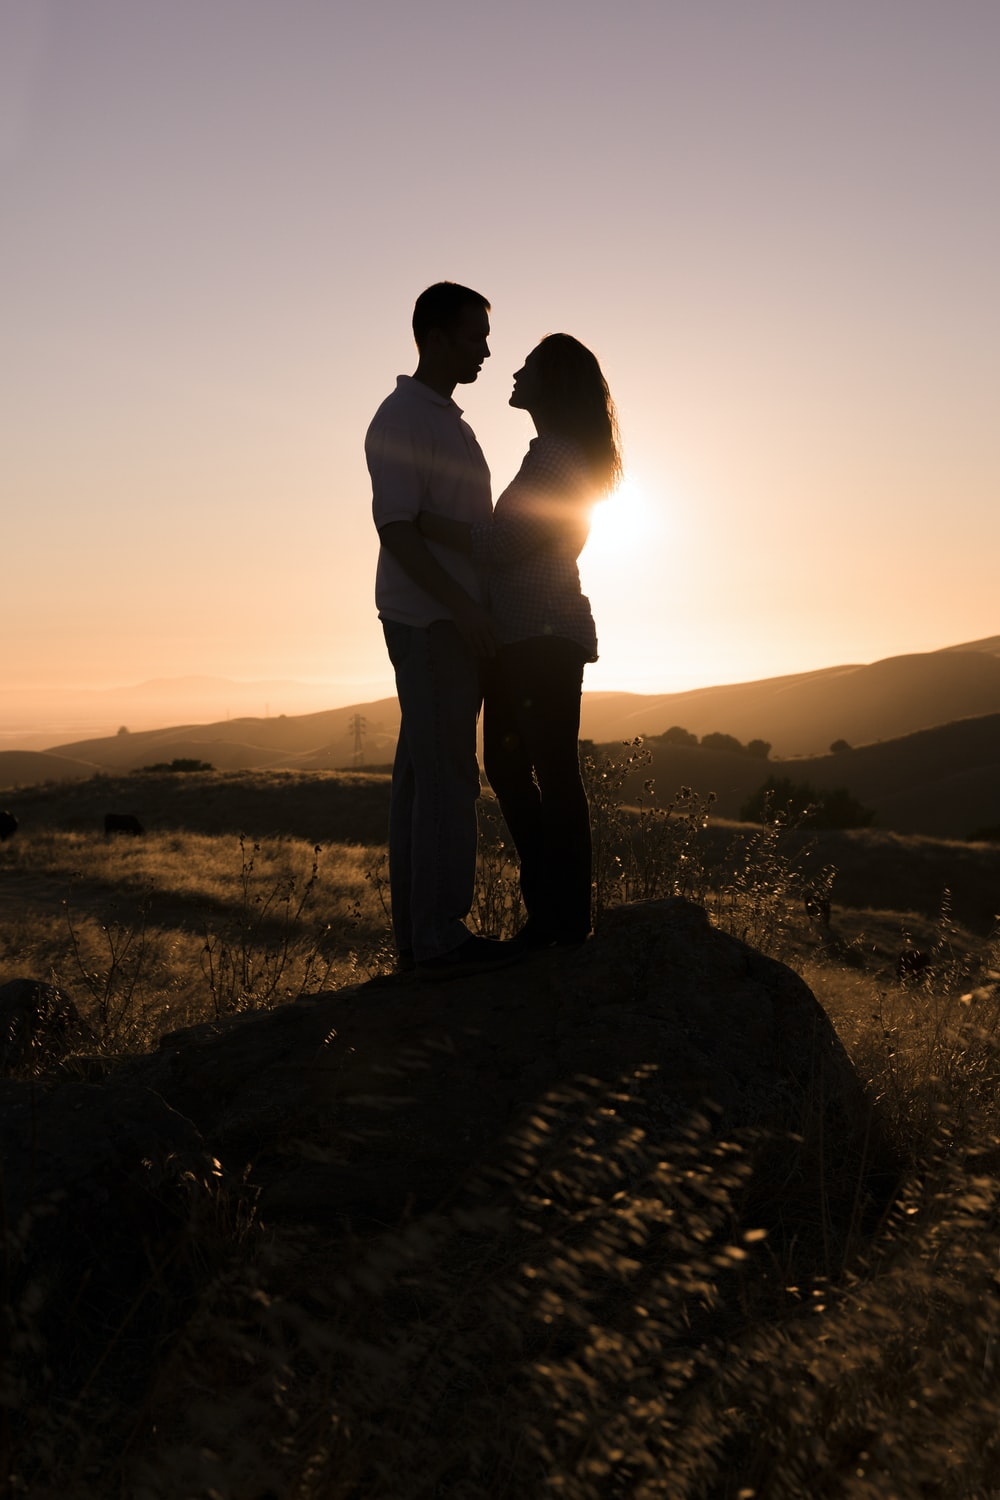 man and woman standing on rock facing each other during day